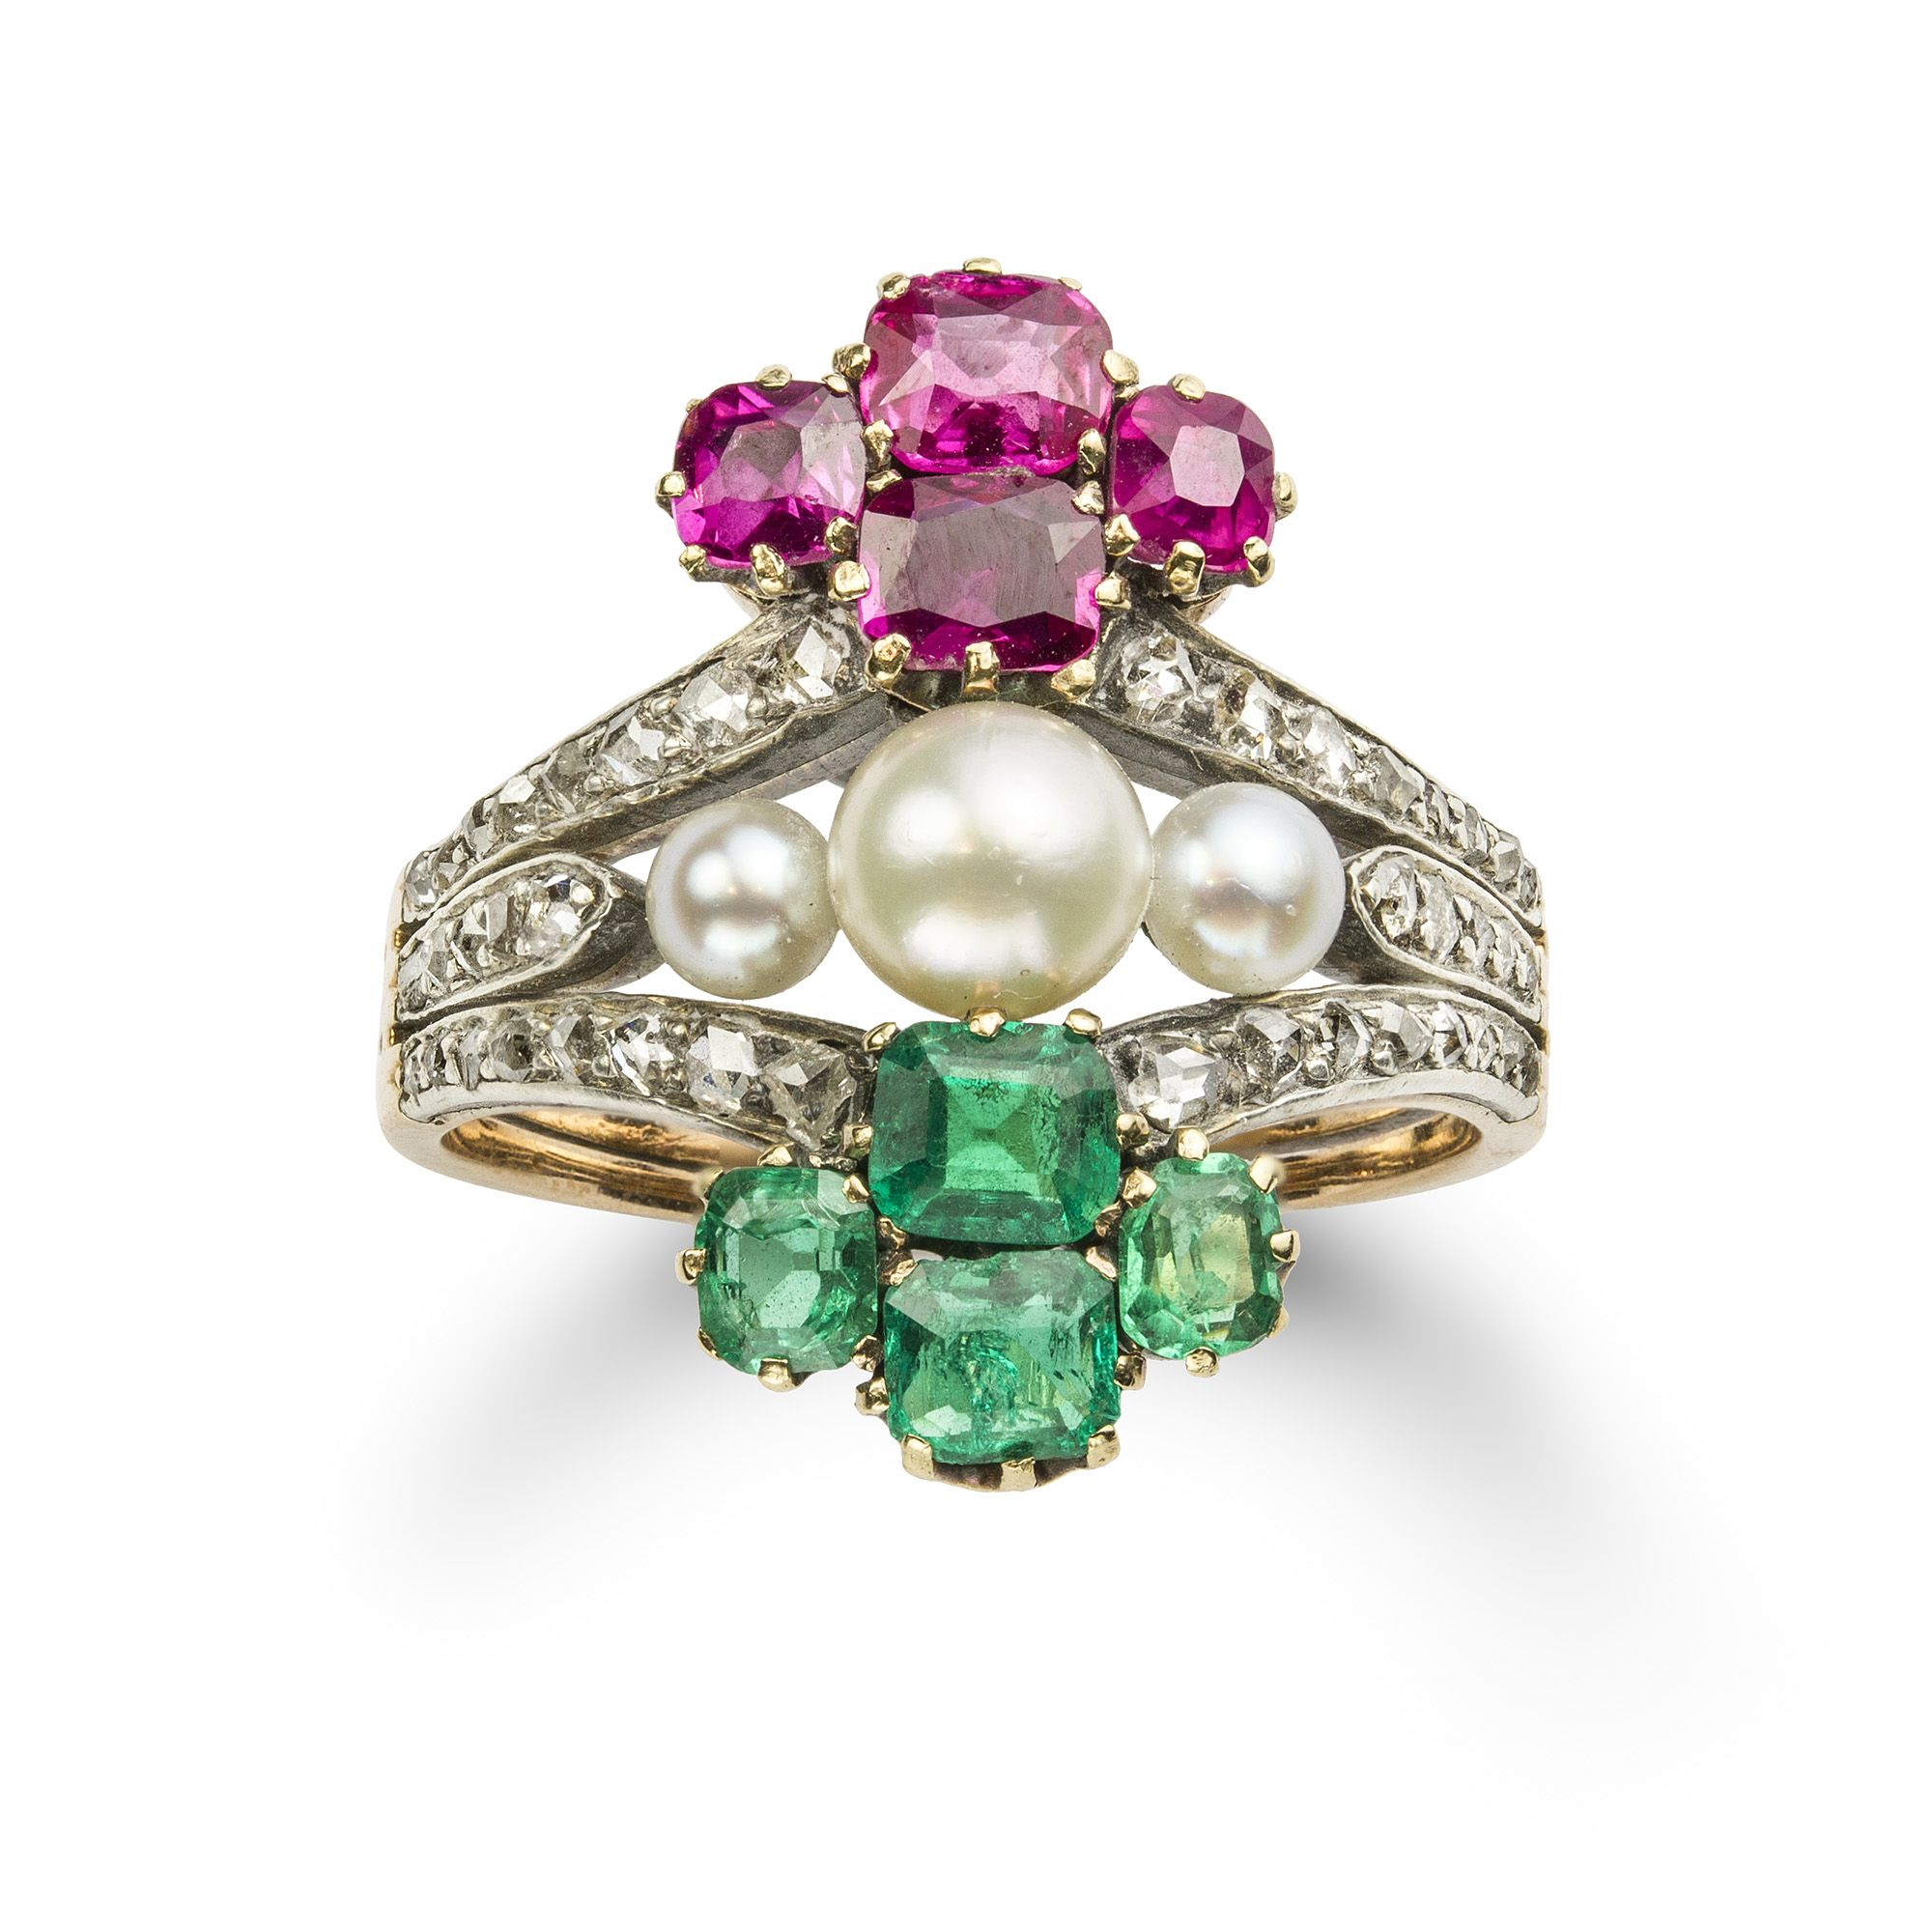 A CENTURY EMERALD, RUBY, DIAMOND AND PEARL RING